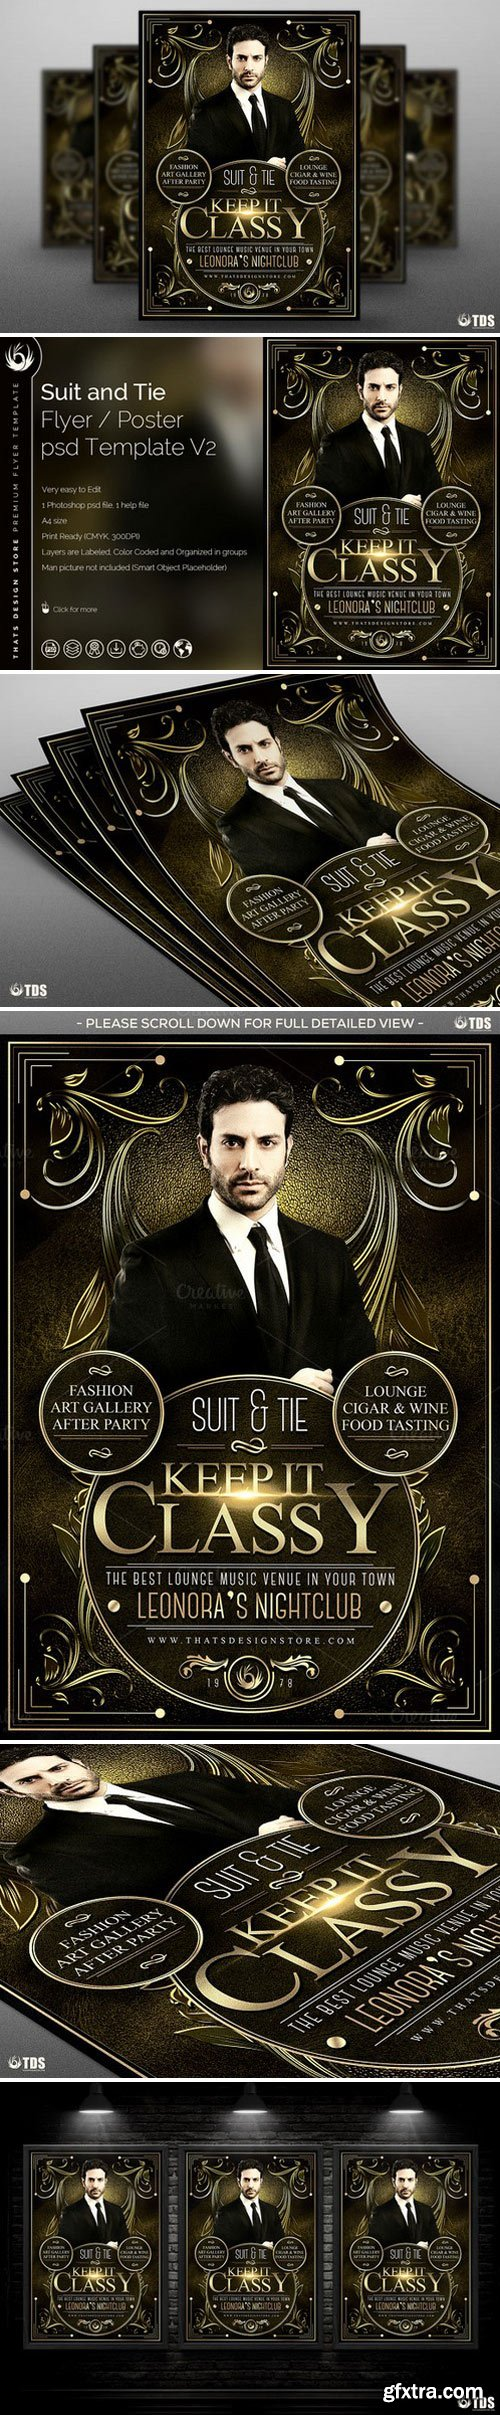 CM - Suit and Tie Flyer Template V2 566254